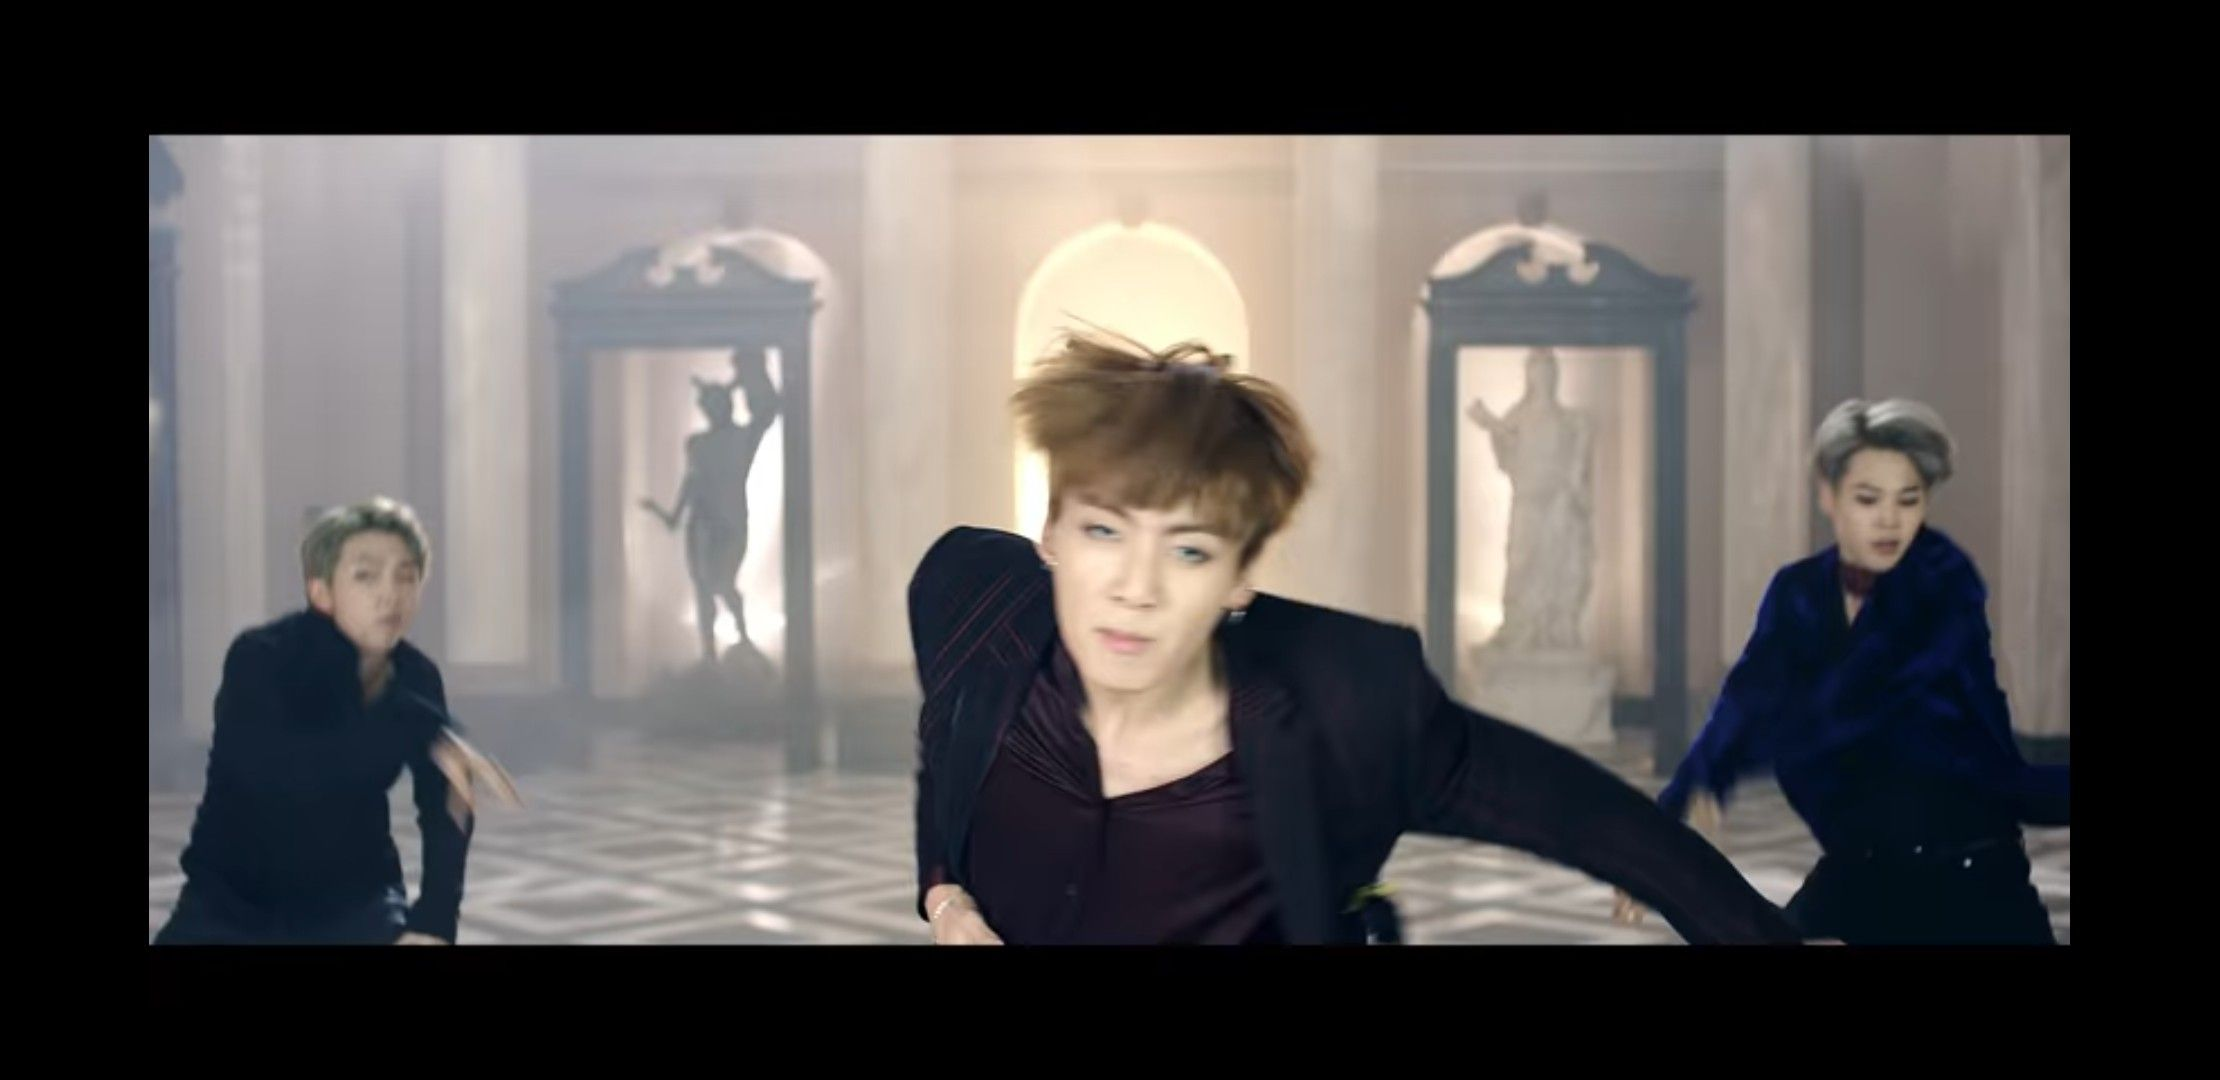 LMAO here's a funny screenshot I took from BTS Blood, Sweat, and